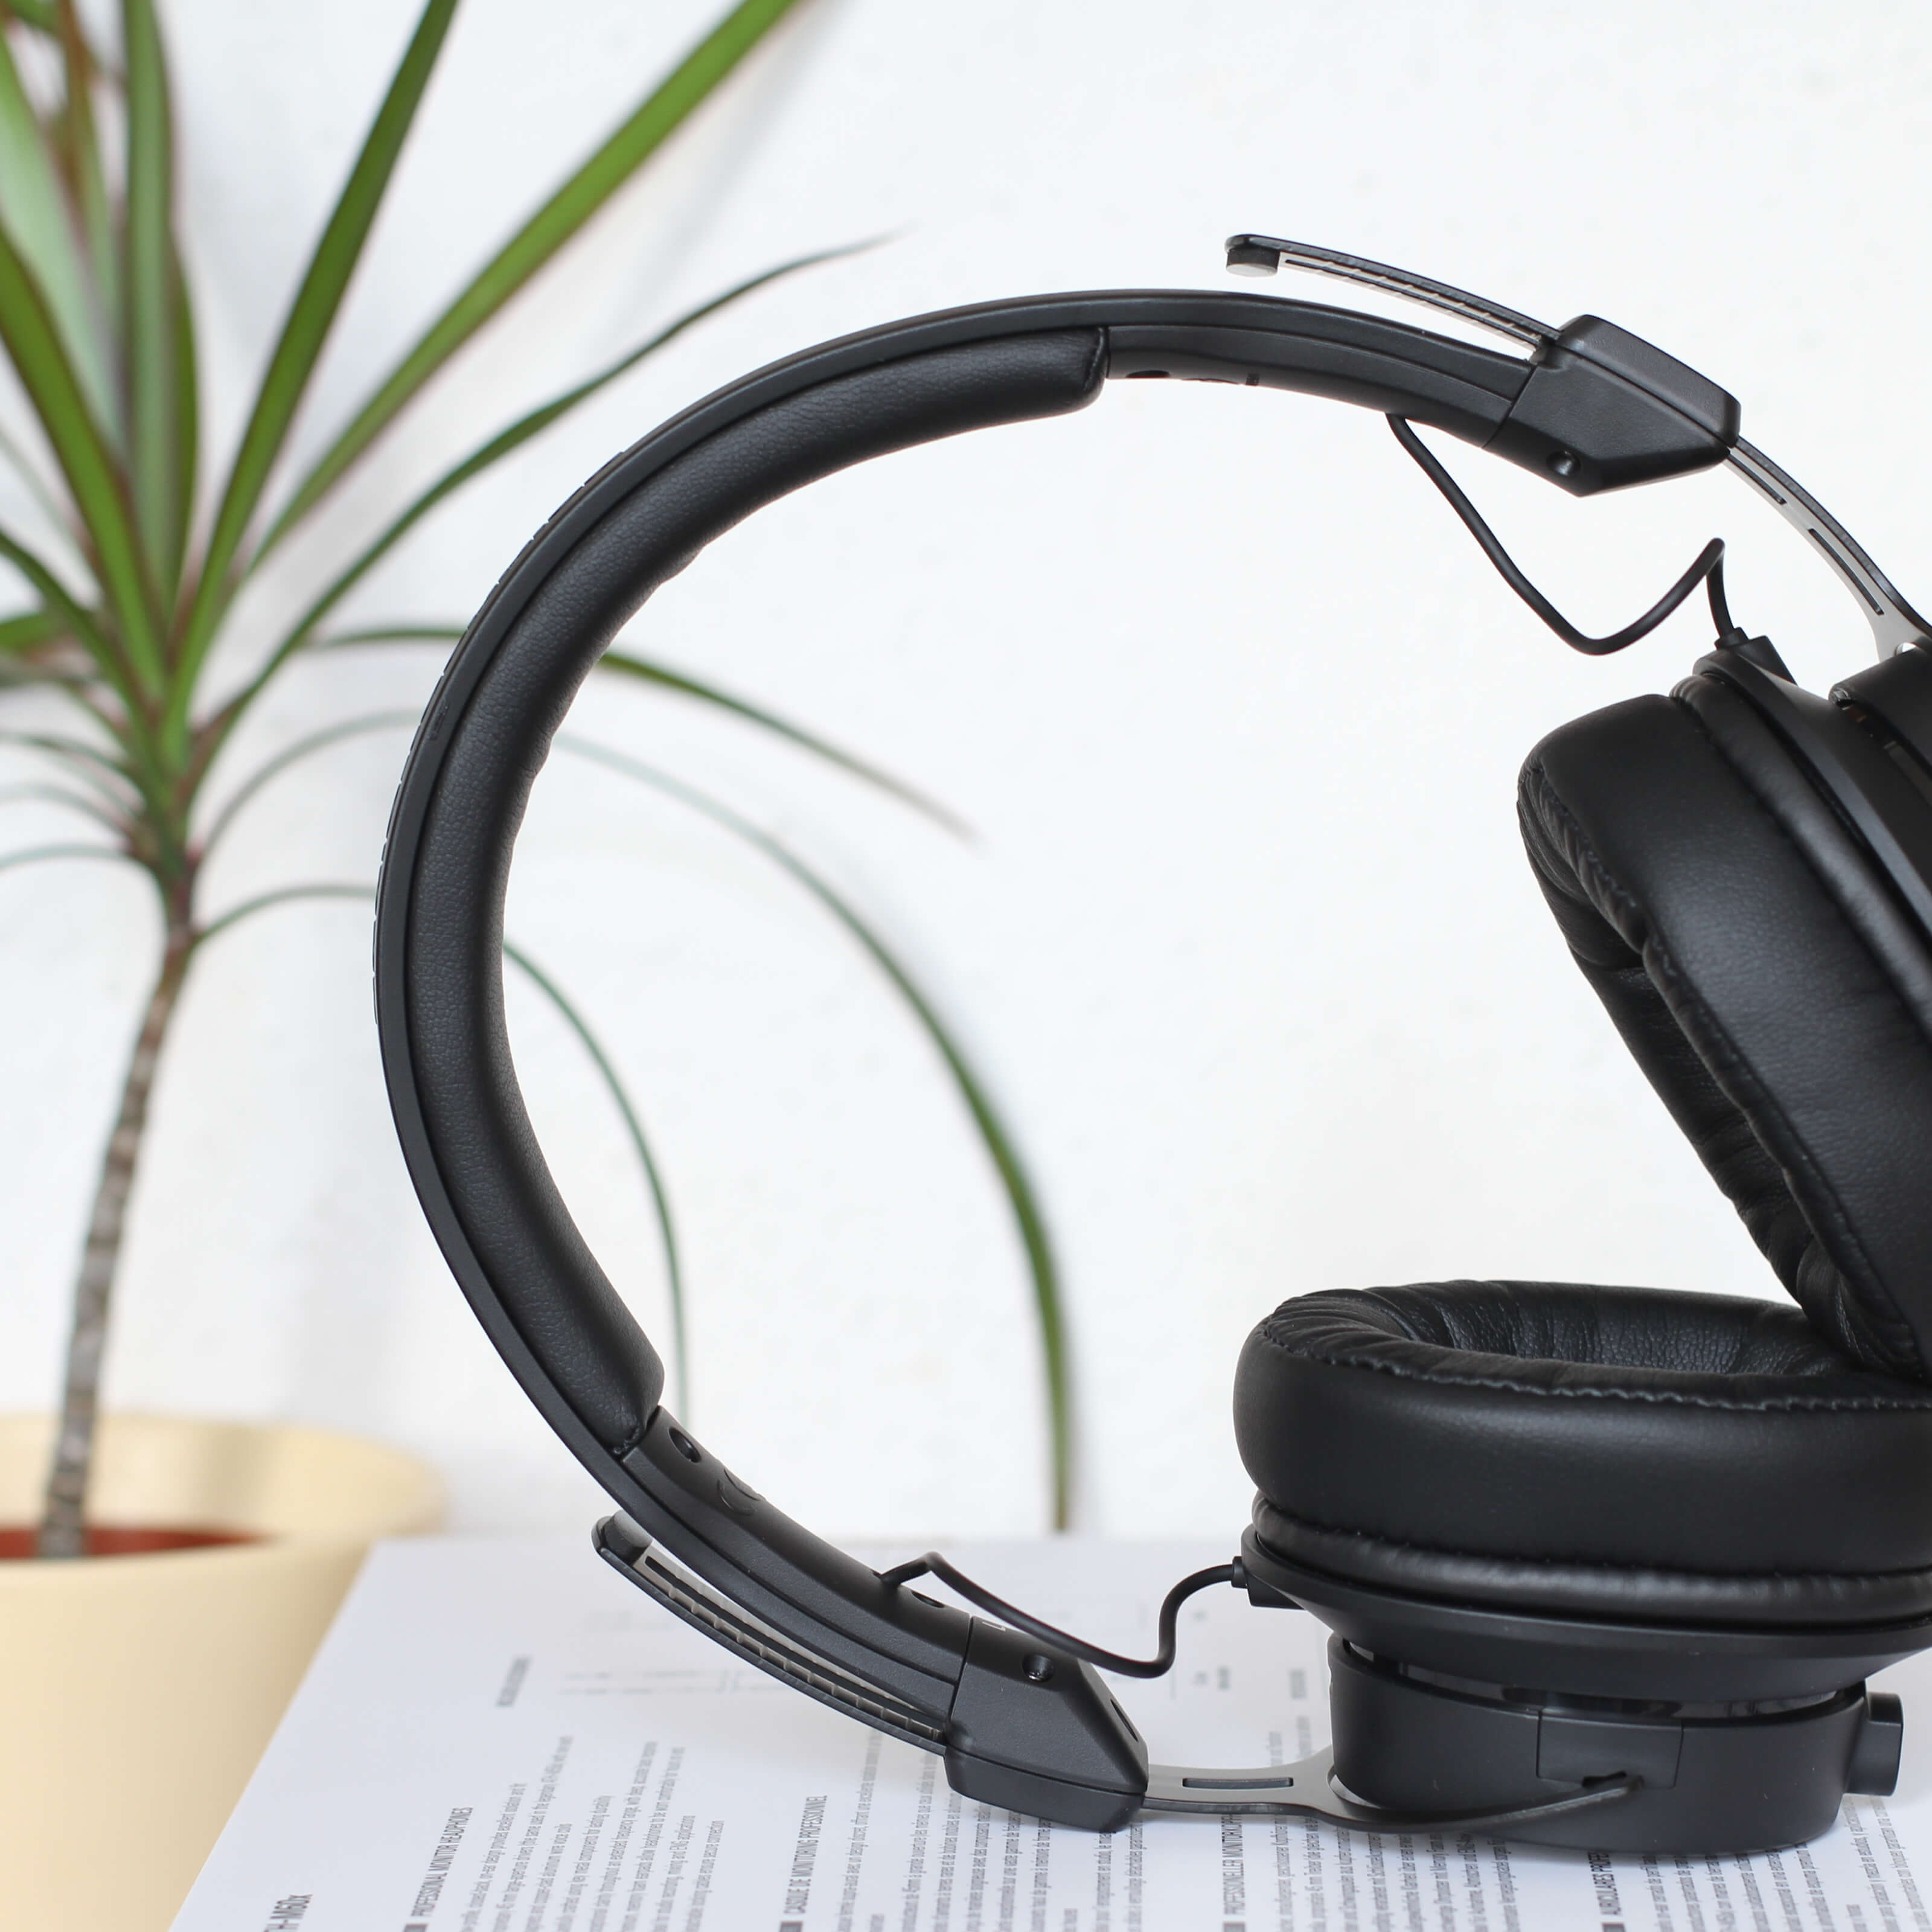 black headphones, paper, house plant